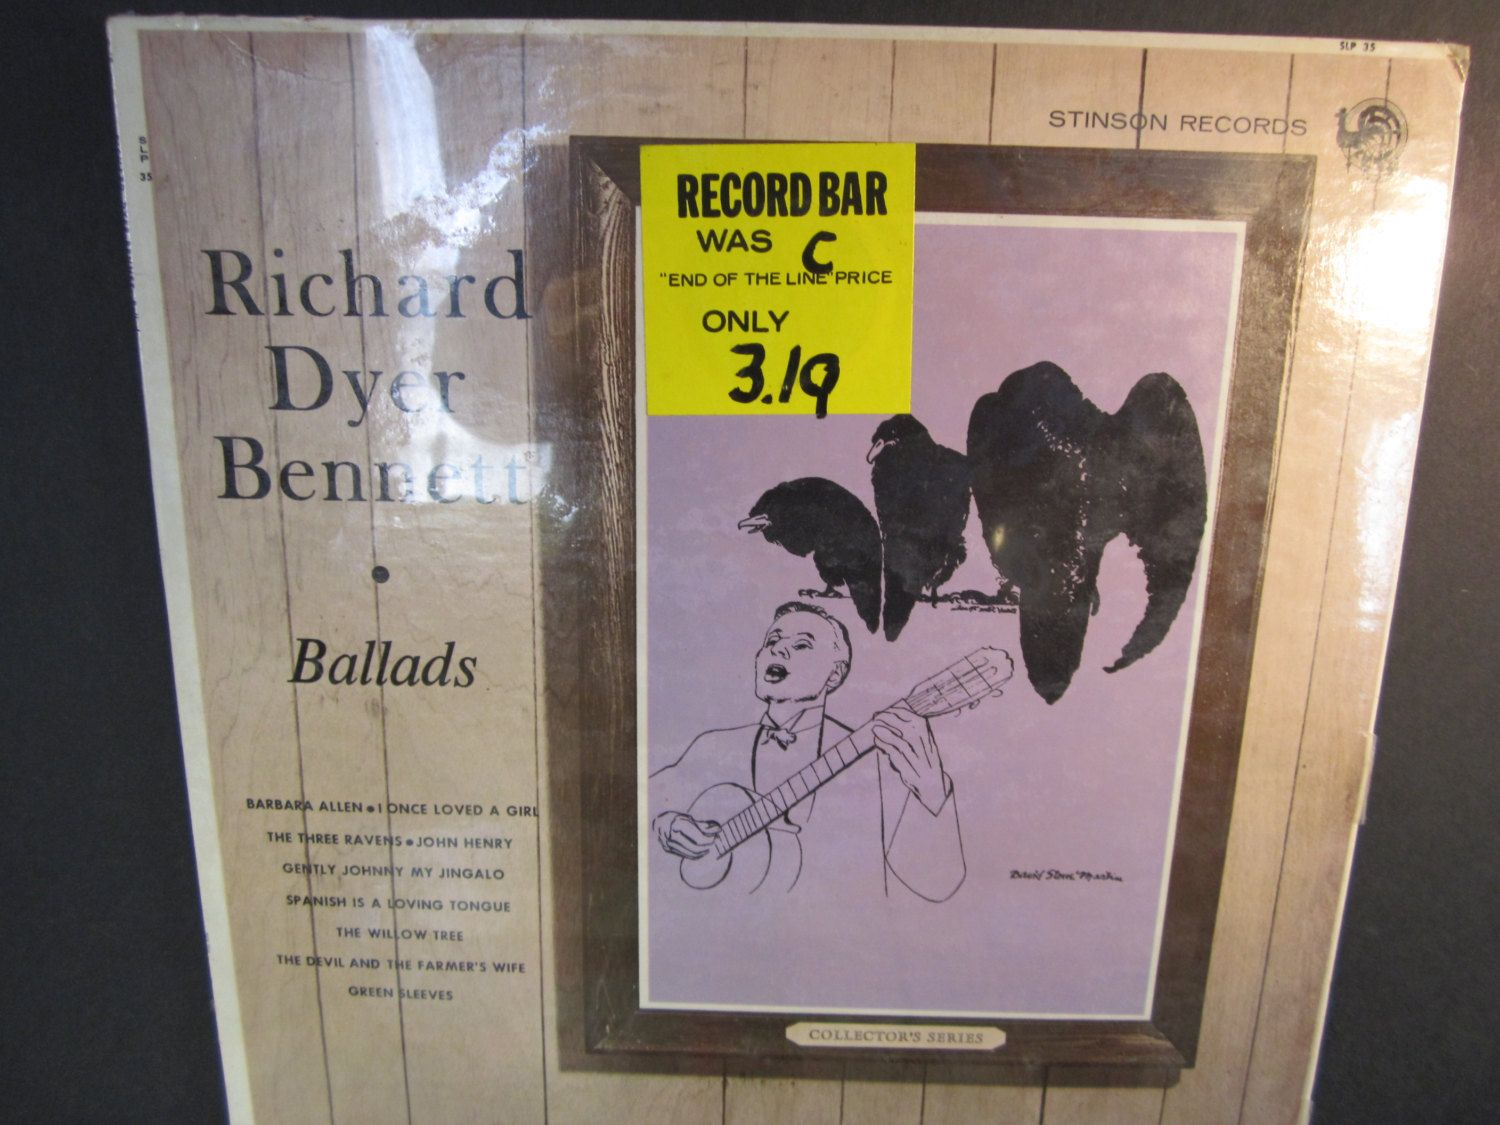 Richard Dyer Bennett Ballads Stinson Records SLP 351963 folk country John Henry Barbara Allen Green Sleeves sealed LP